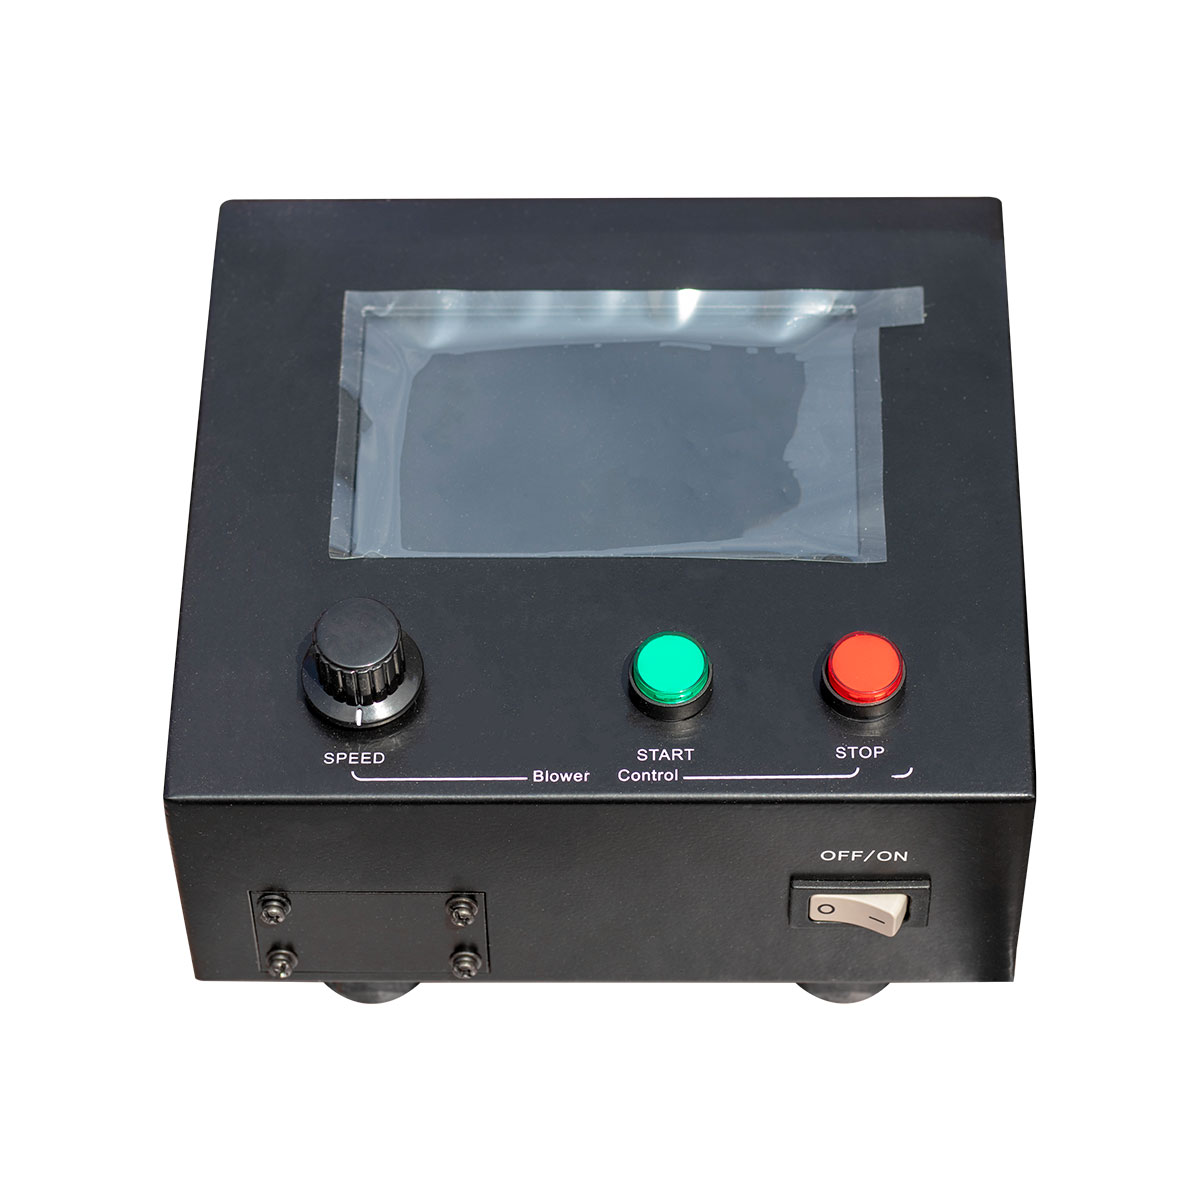 Kanomax Duct Air Leakage Tester - Interface Control Box